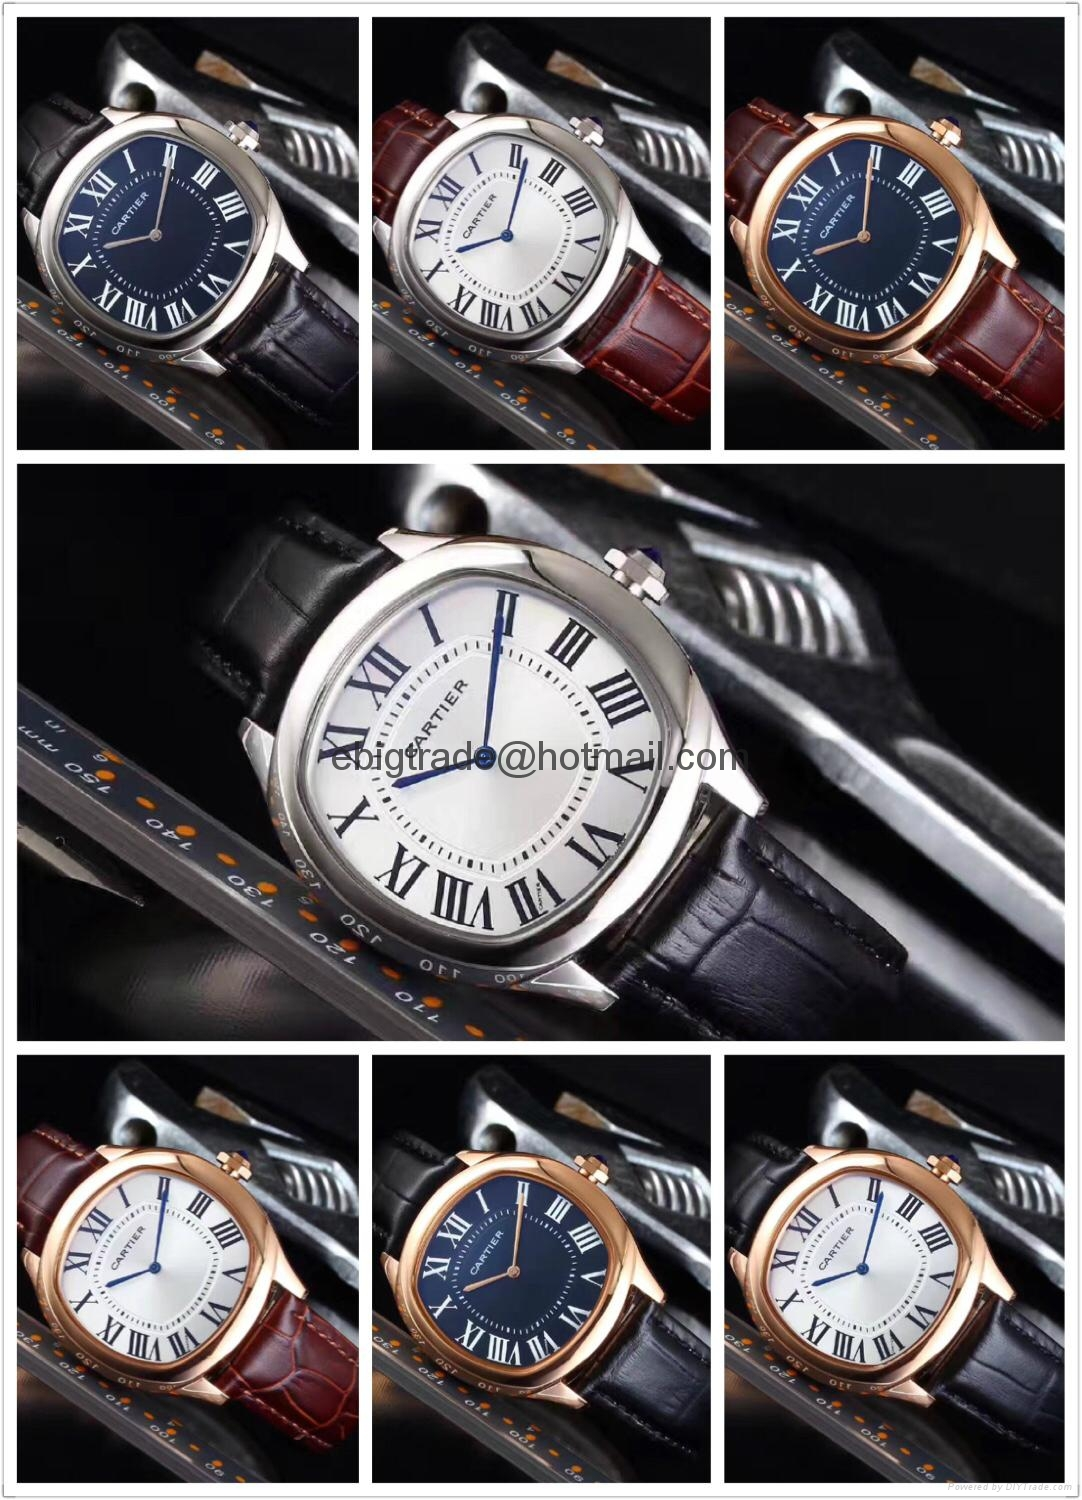 Cartier Watches for sale